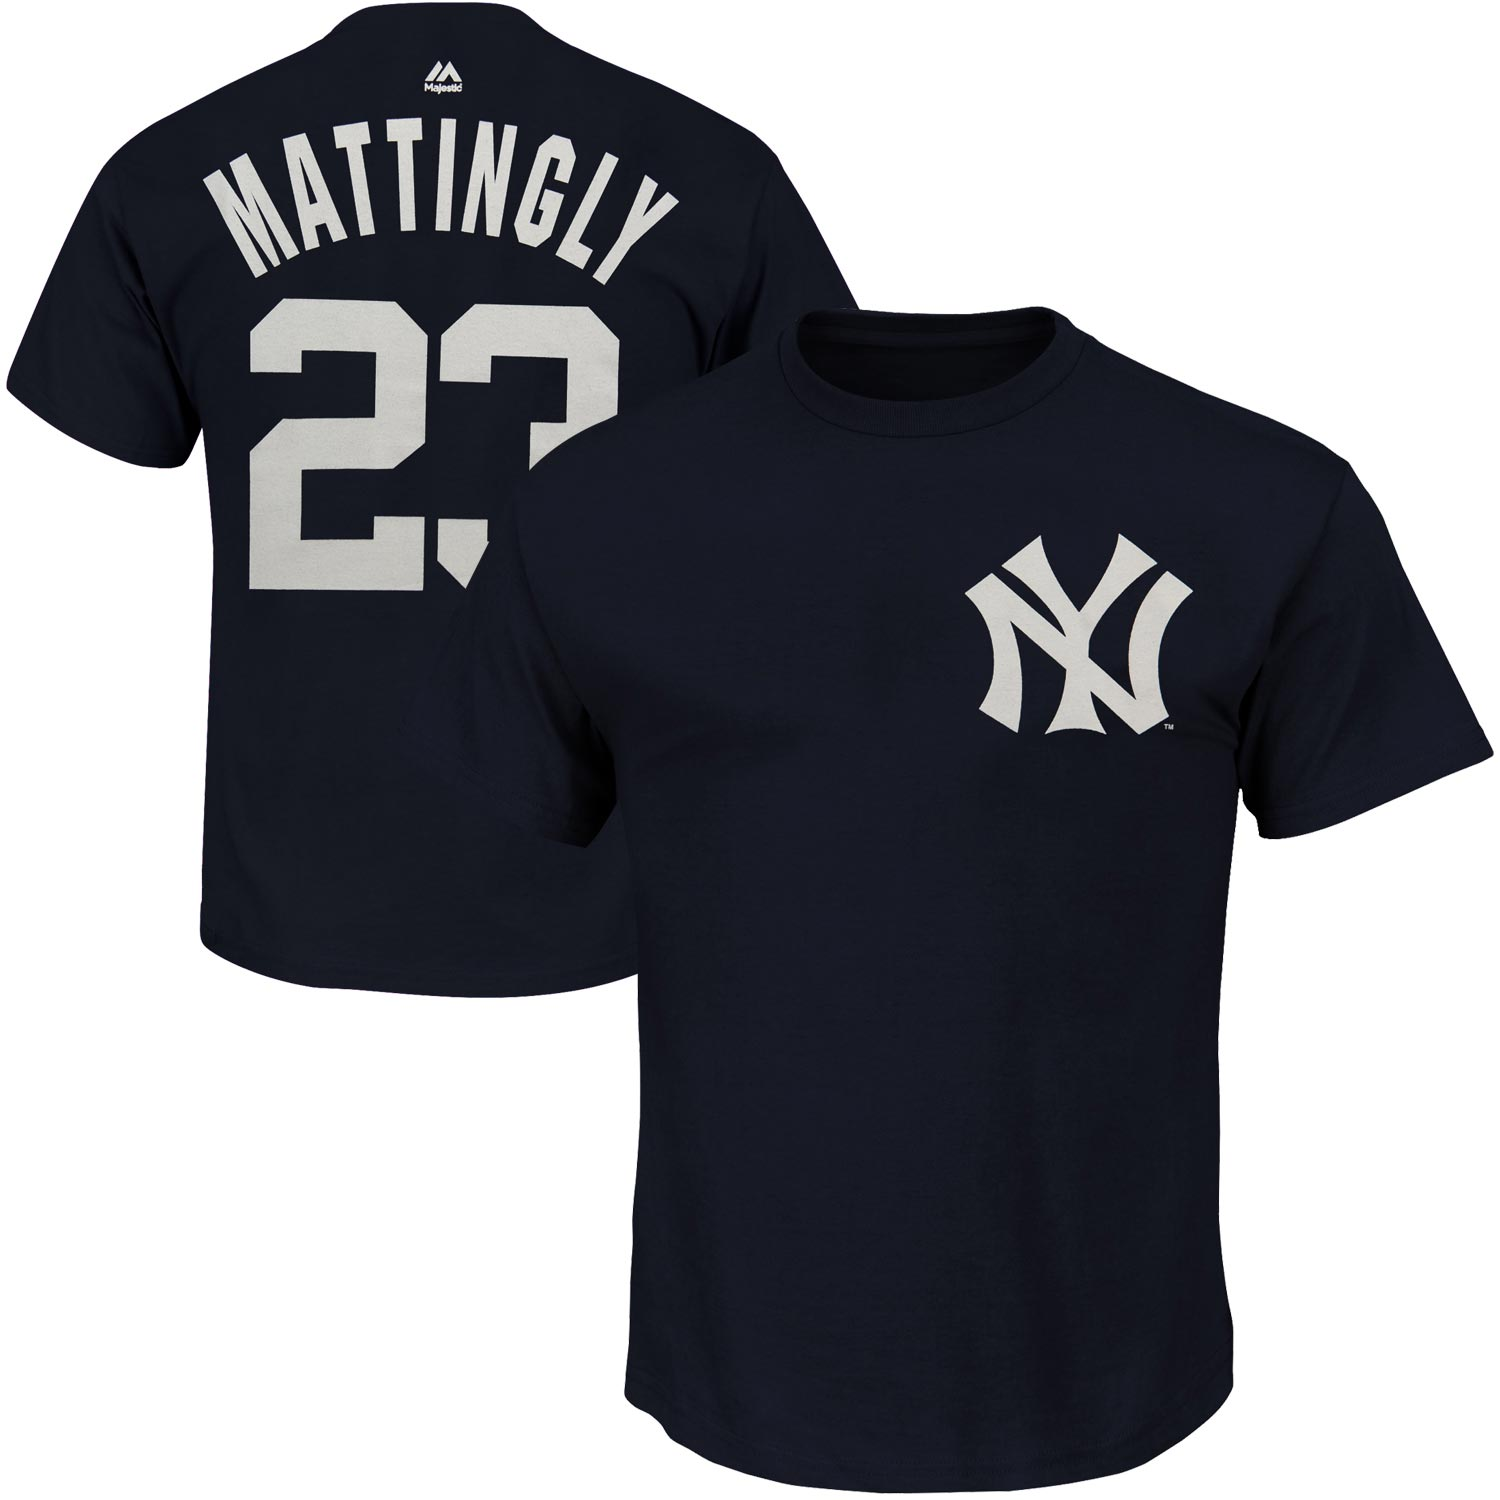 Don Mattingly New York Yankees Majestic Big & Tall Cooperstown Name & Number T-Shirt - Navy